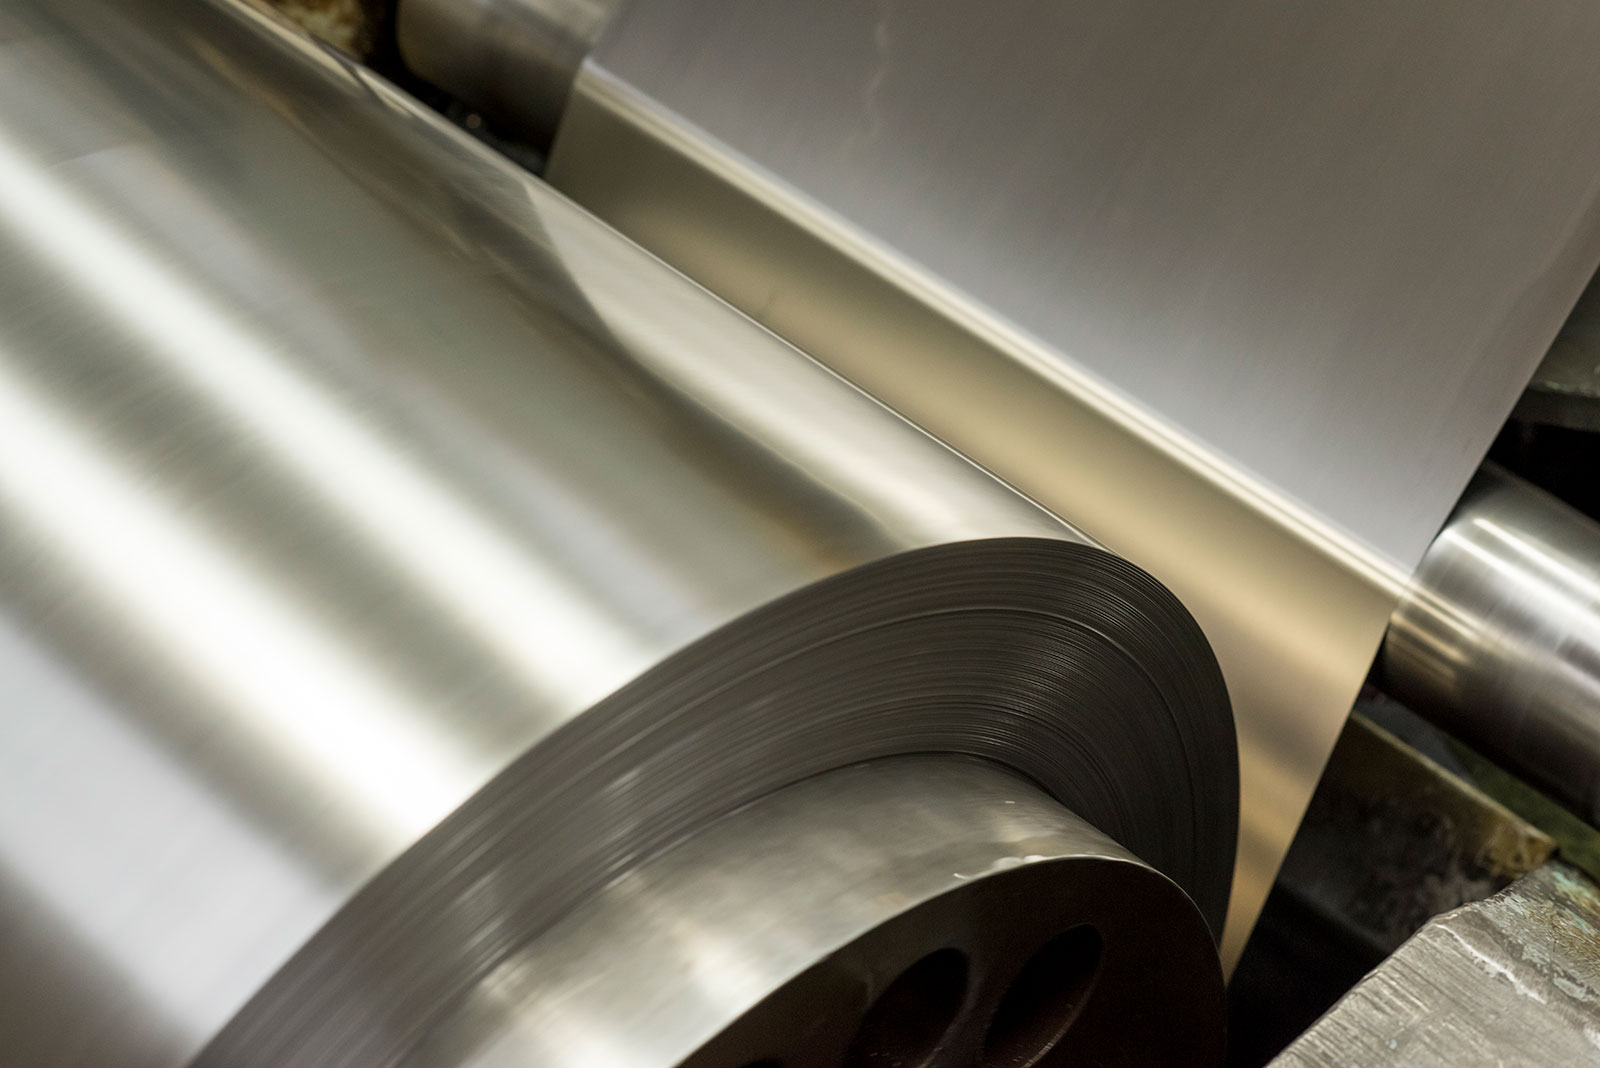 Stainless Steel and Its Alloys